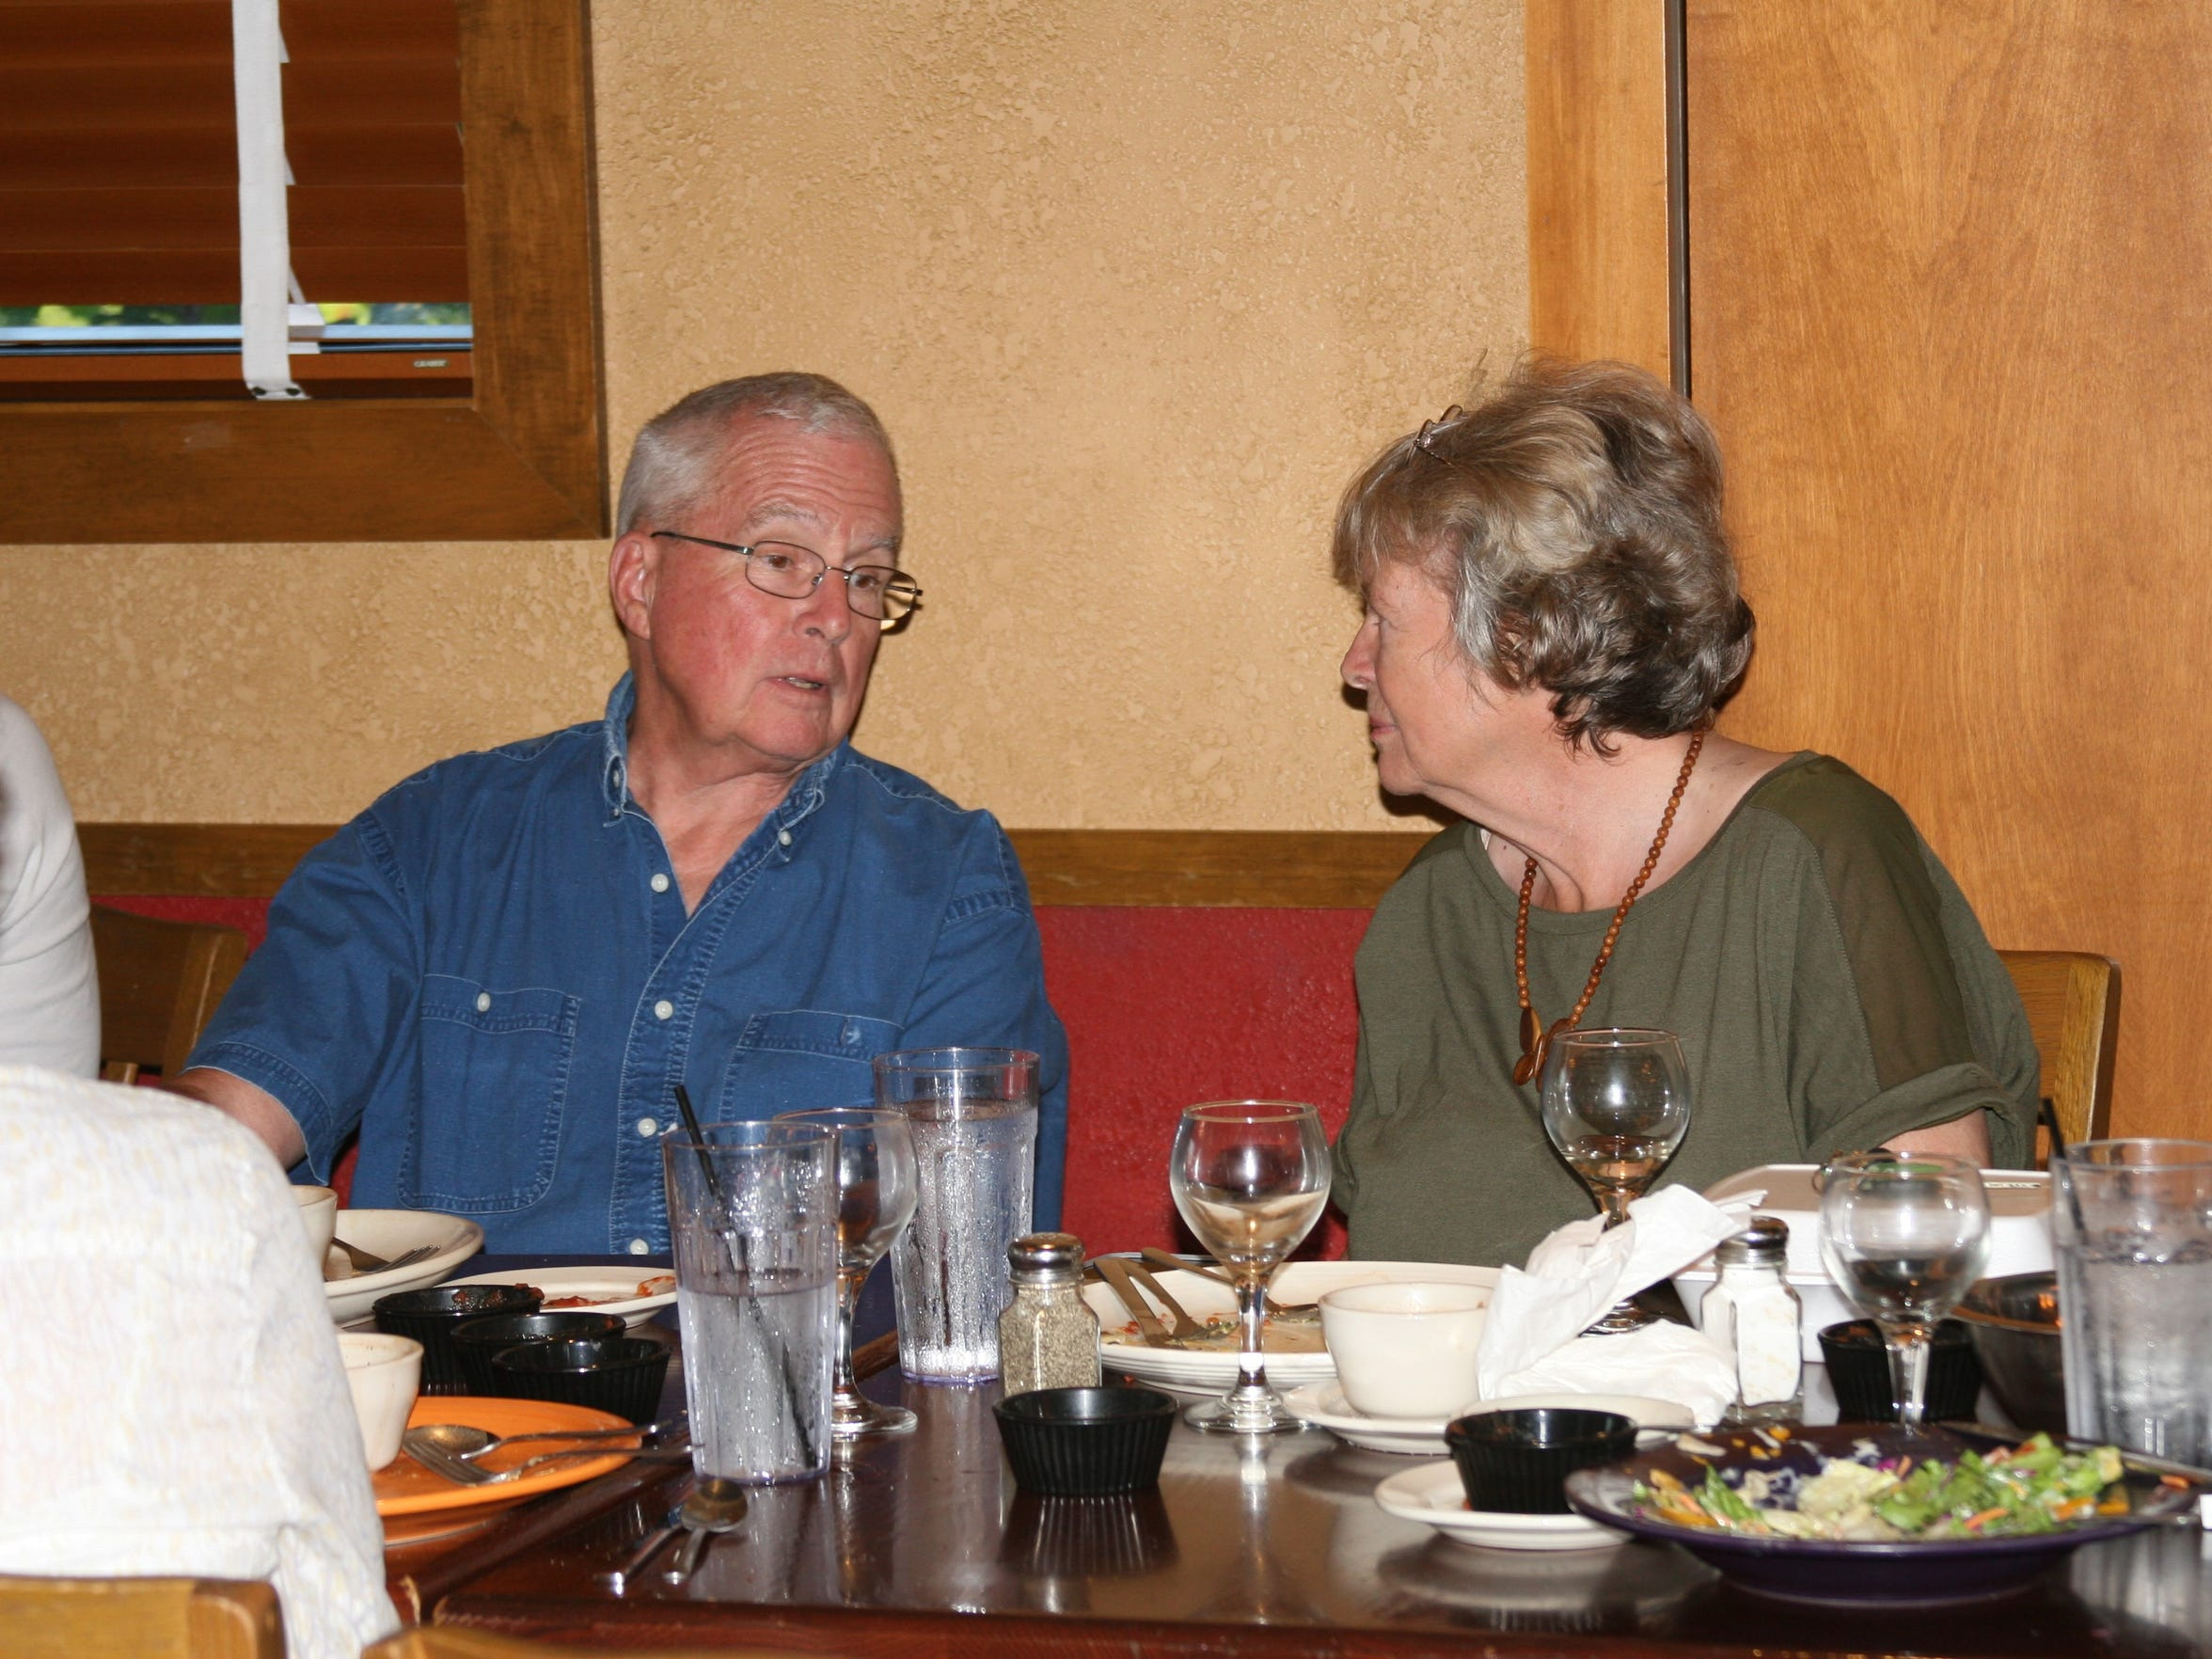 Jane Darr of Cotter and Bill Weeks Lockyer of Mountain Home, both members of St. Andrew's Episcopal Church enjoy fellowship and food at El Chico's as part of the church's Pub Theology program.